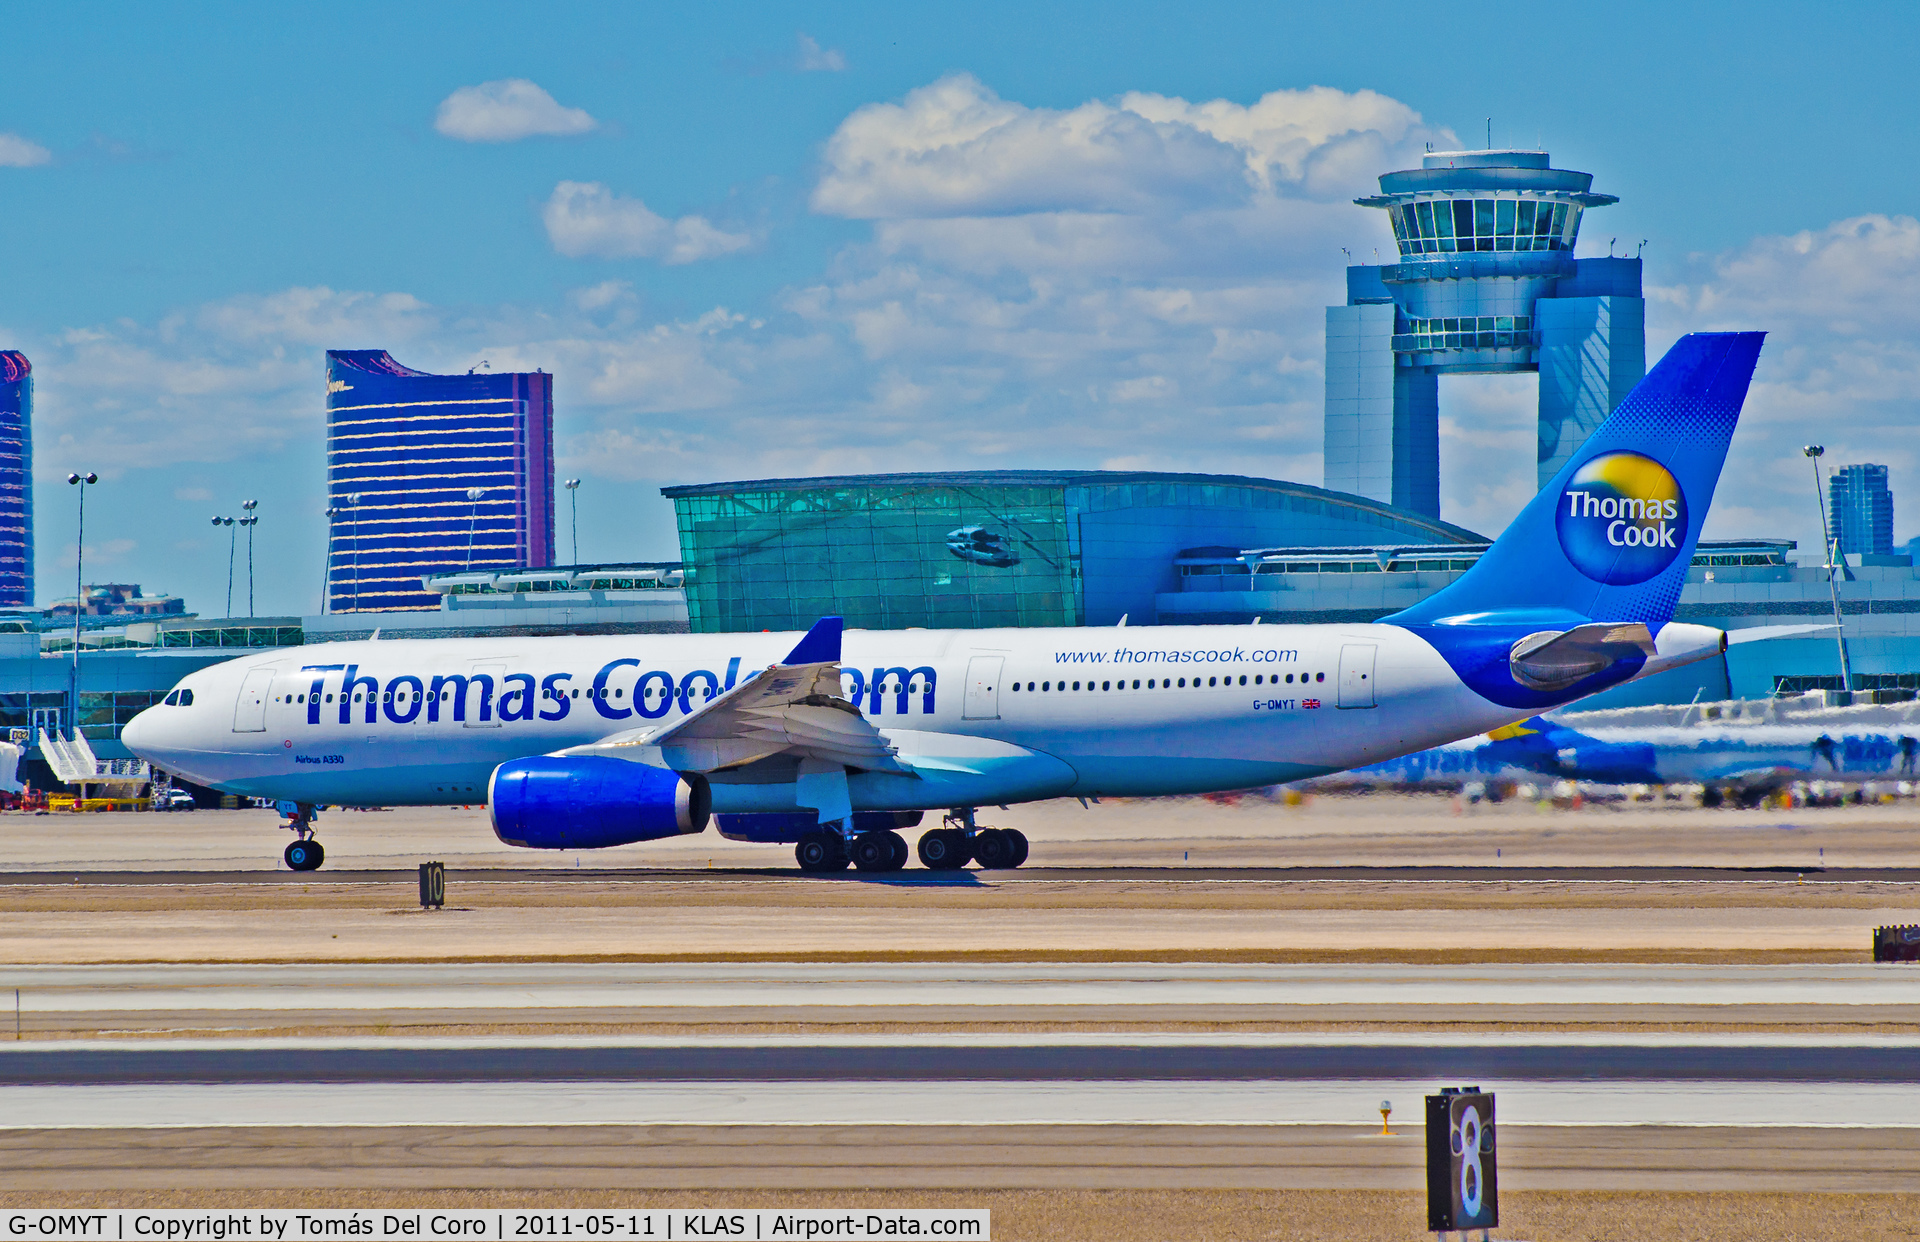 The Thomas Cook name became synonymous with travel from as far back as when it was successful with a one-day rail service. After a prosperous start they built up a substantial amount of business and eventually the Thomas Cook & Son brand was founded.